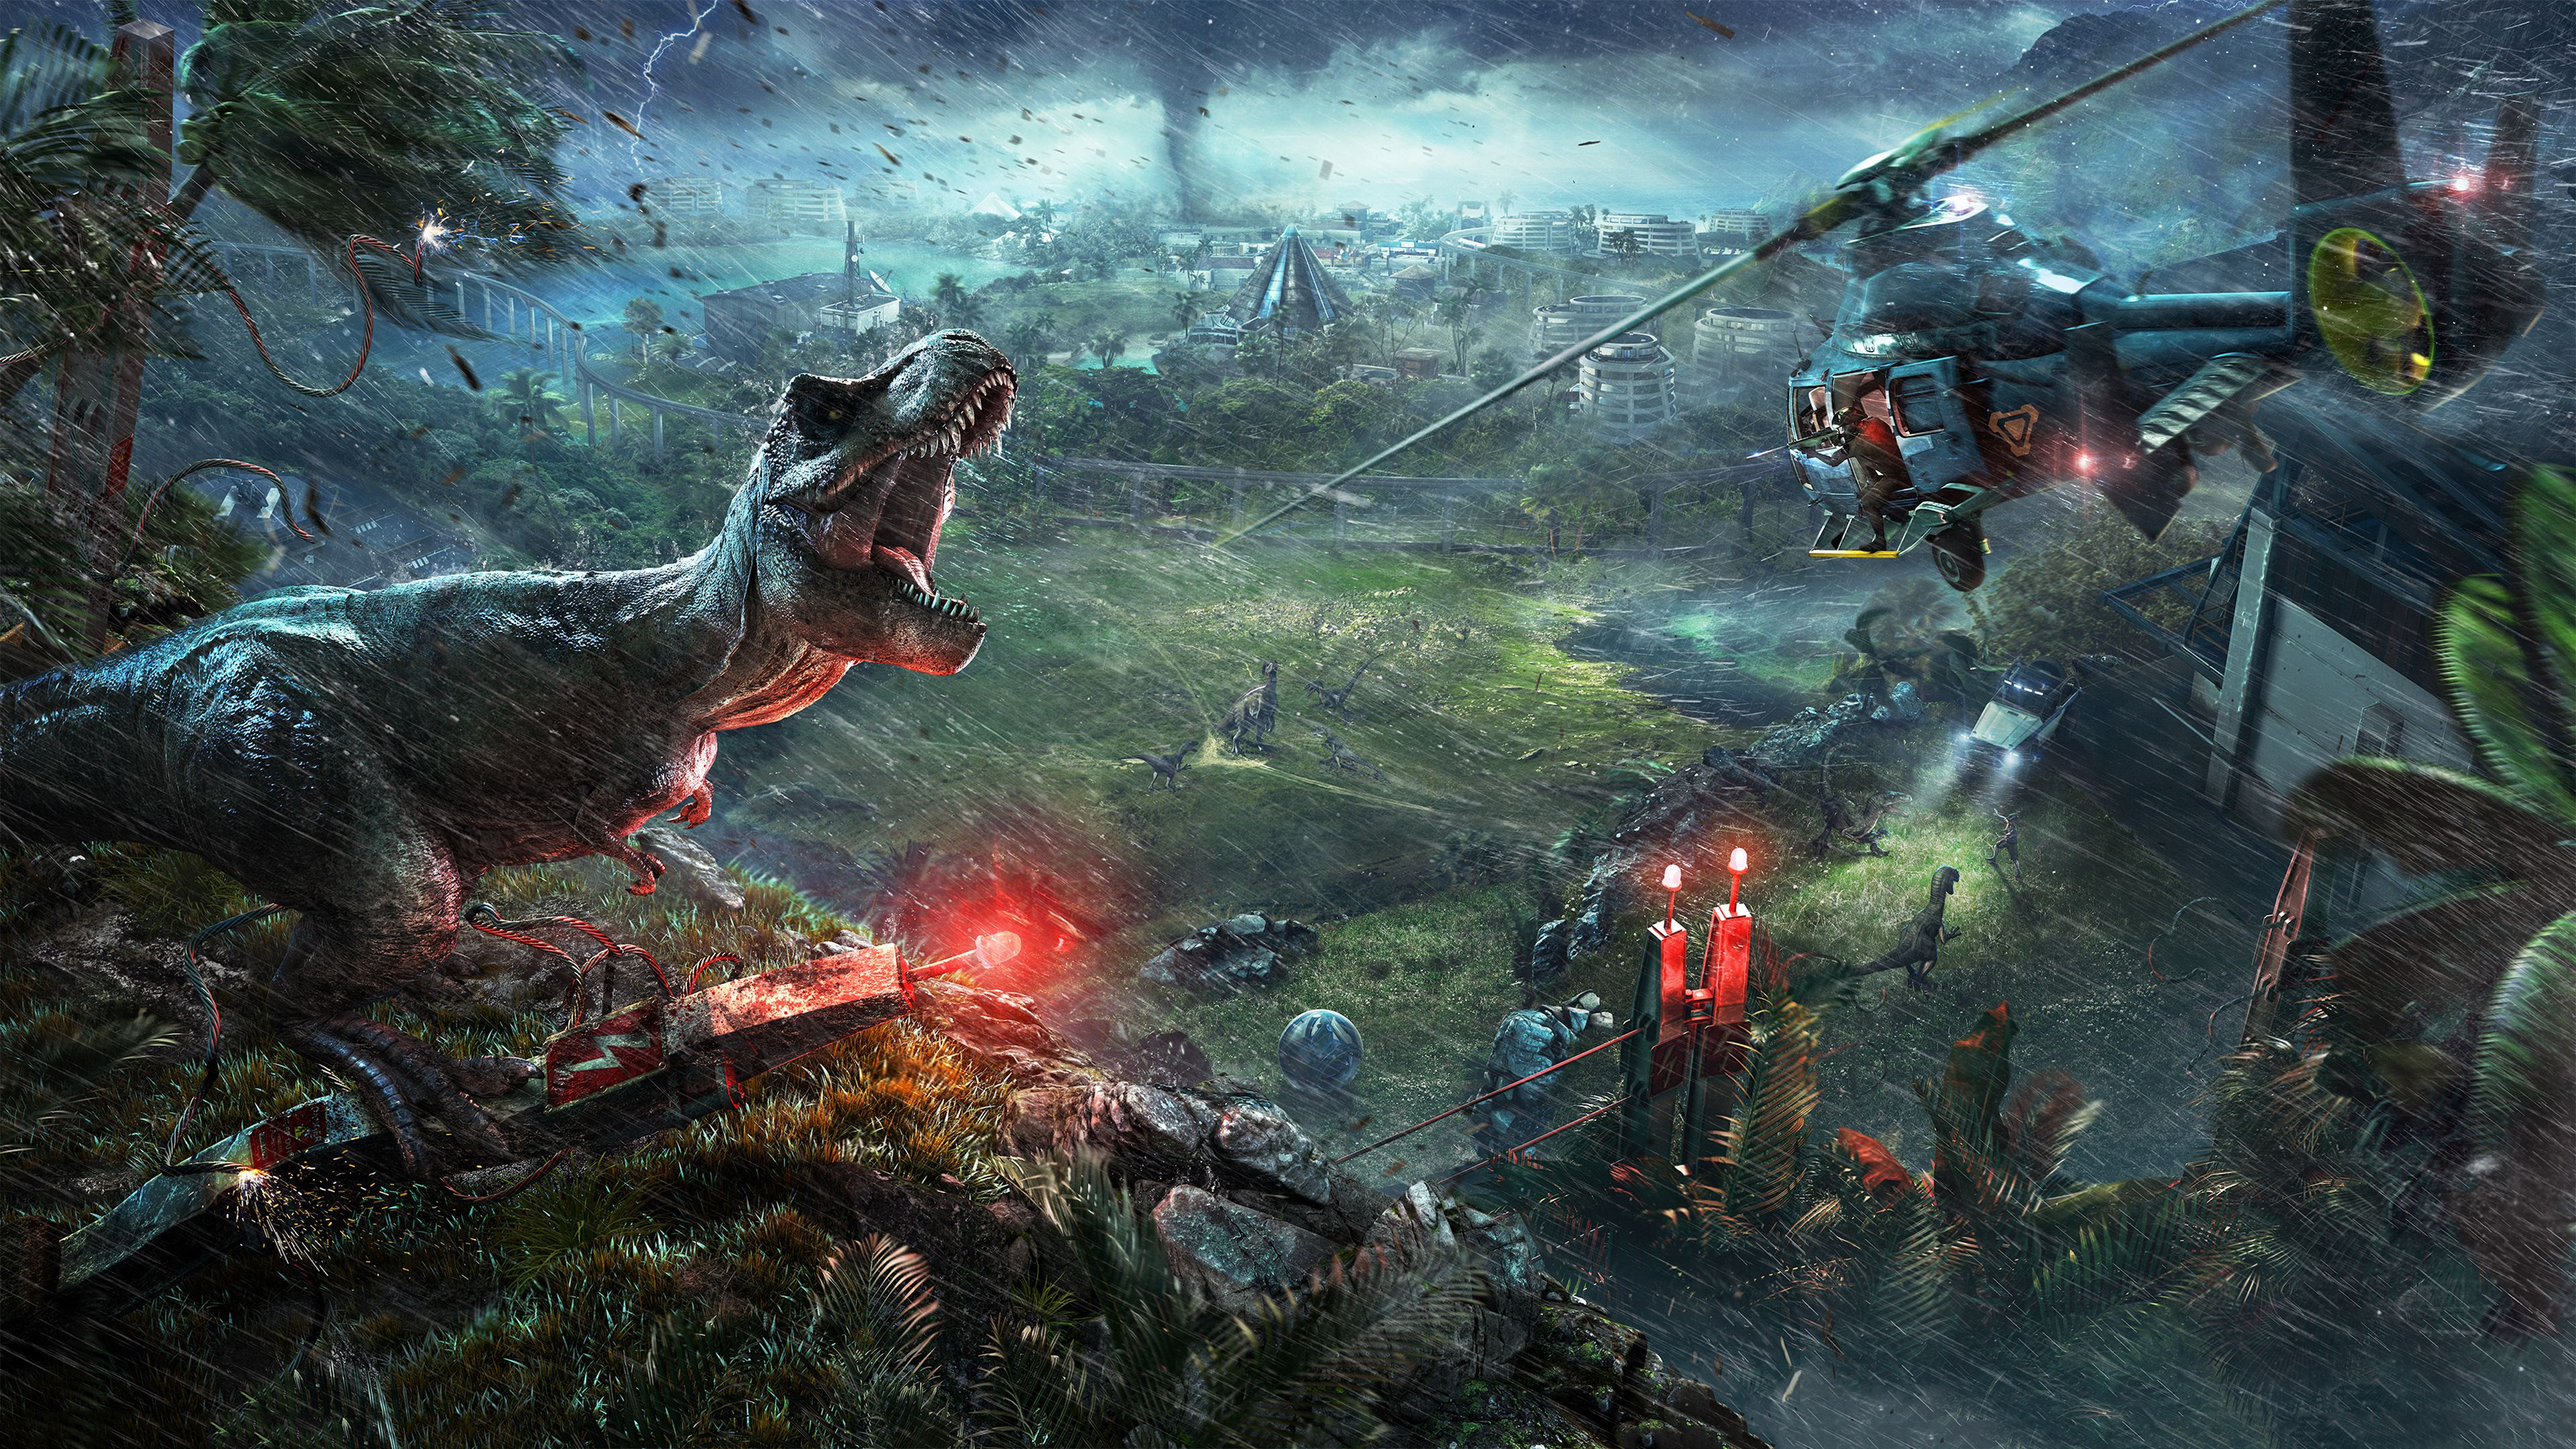 Pin By Hd Red On Dinosaurs In 2019 Jurassic World Concept